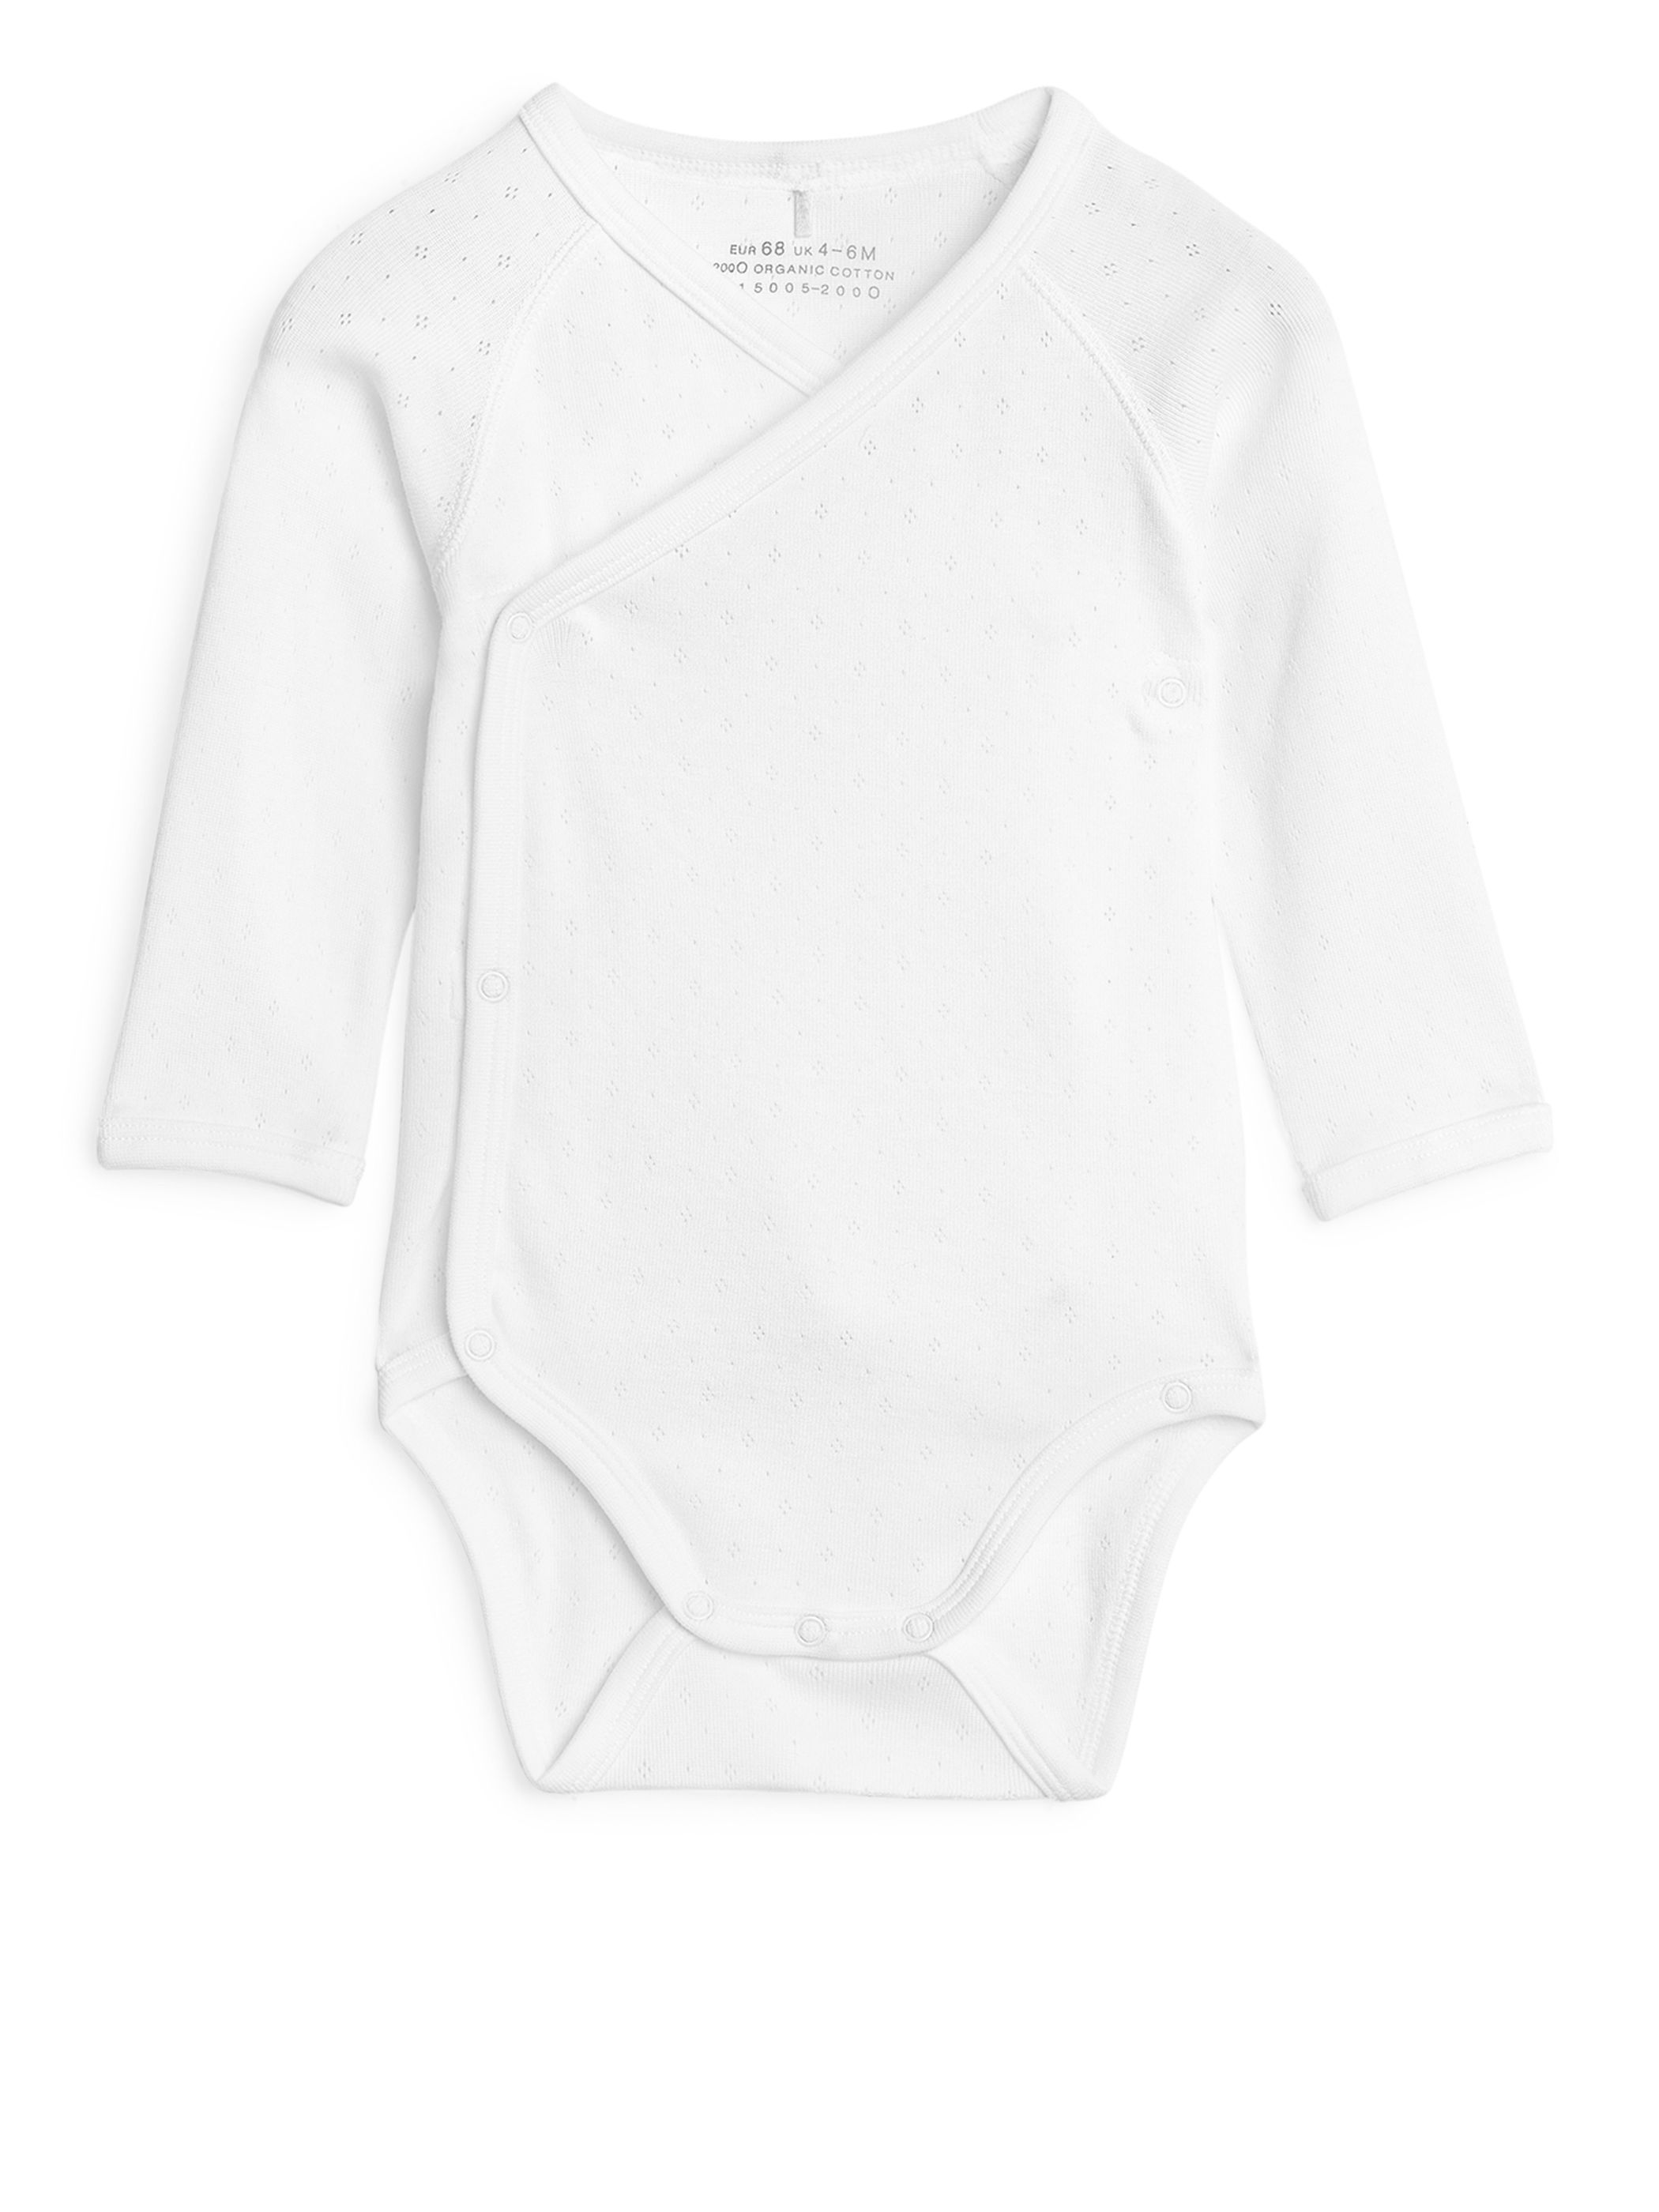 Fabric Swatch image of Arket wrapover bodysuit in white